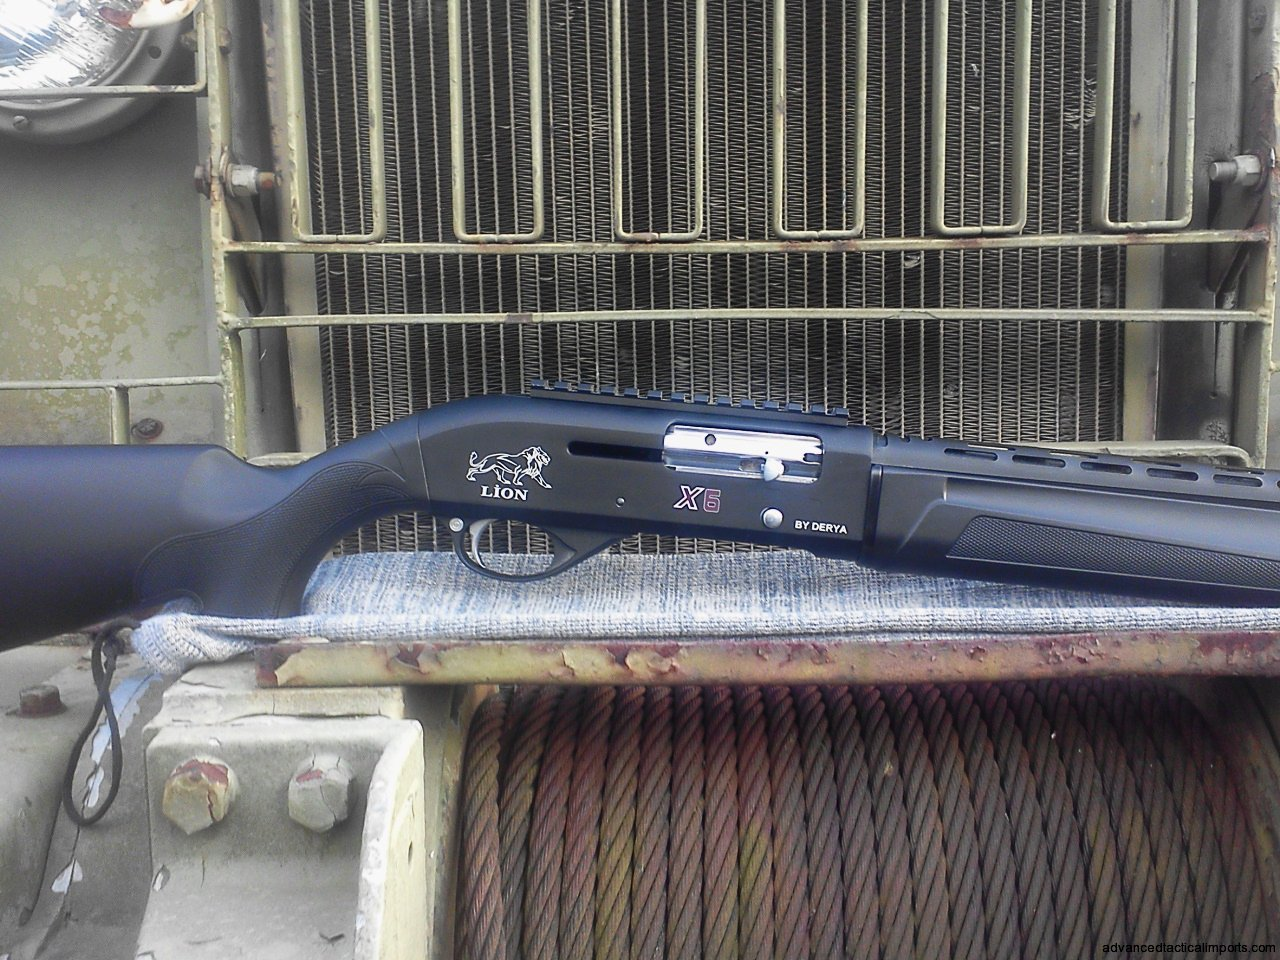 lion-x6-tactical-home_-defense-shotgun-imported-by_-advanced-tactical-imports-huntsville-al_-256-534-4788